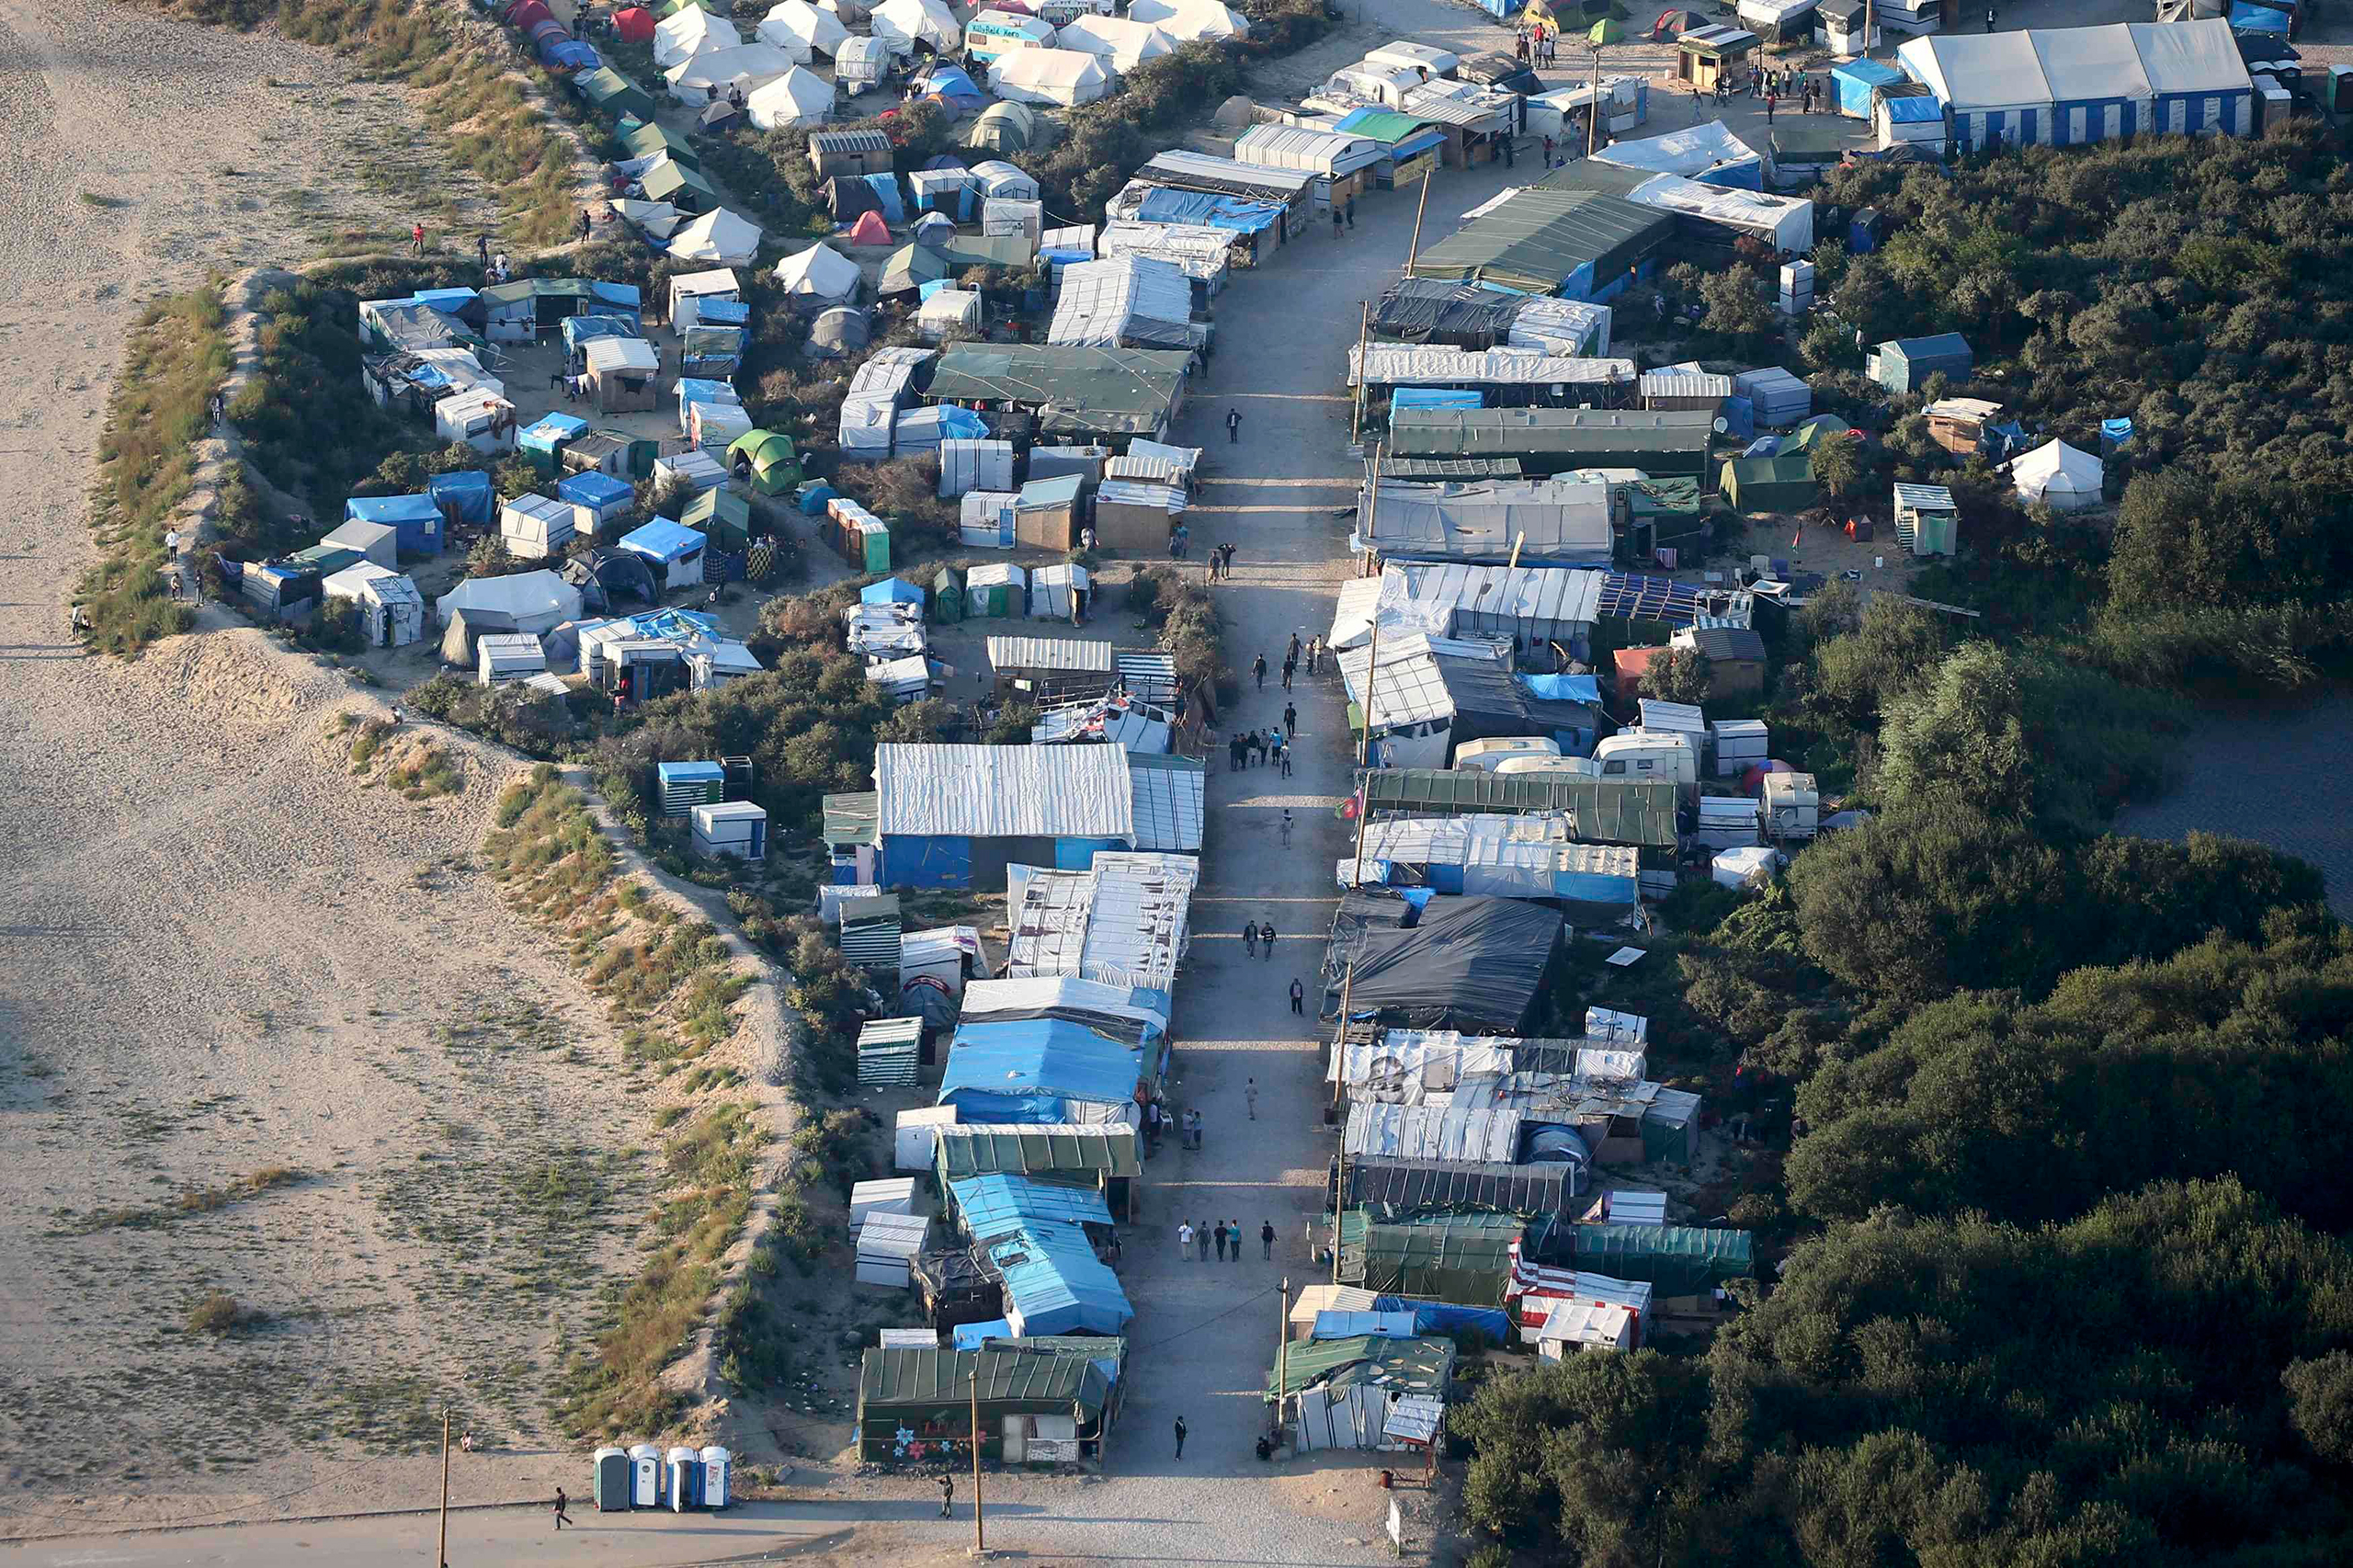 An aerial view shows makeshift shelters and tents where migrants live in what is known as  the Jungle,  a sprawling camp in Calais, France, on Sept. 7, 2016.